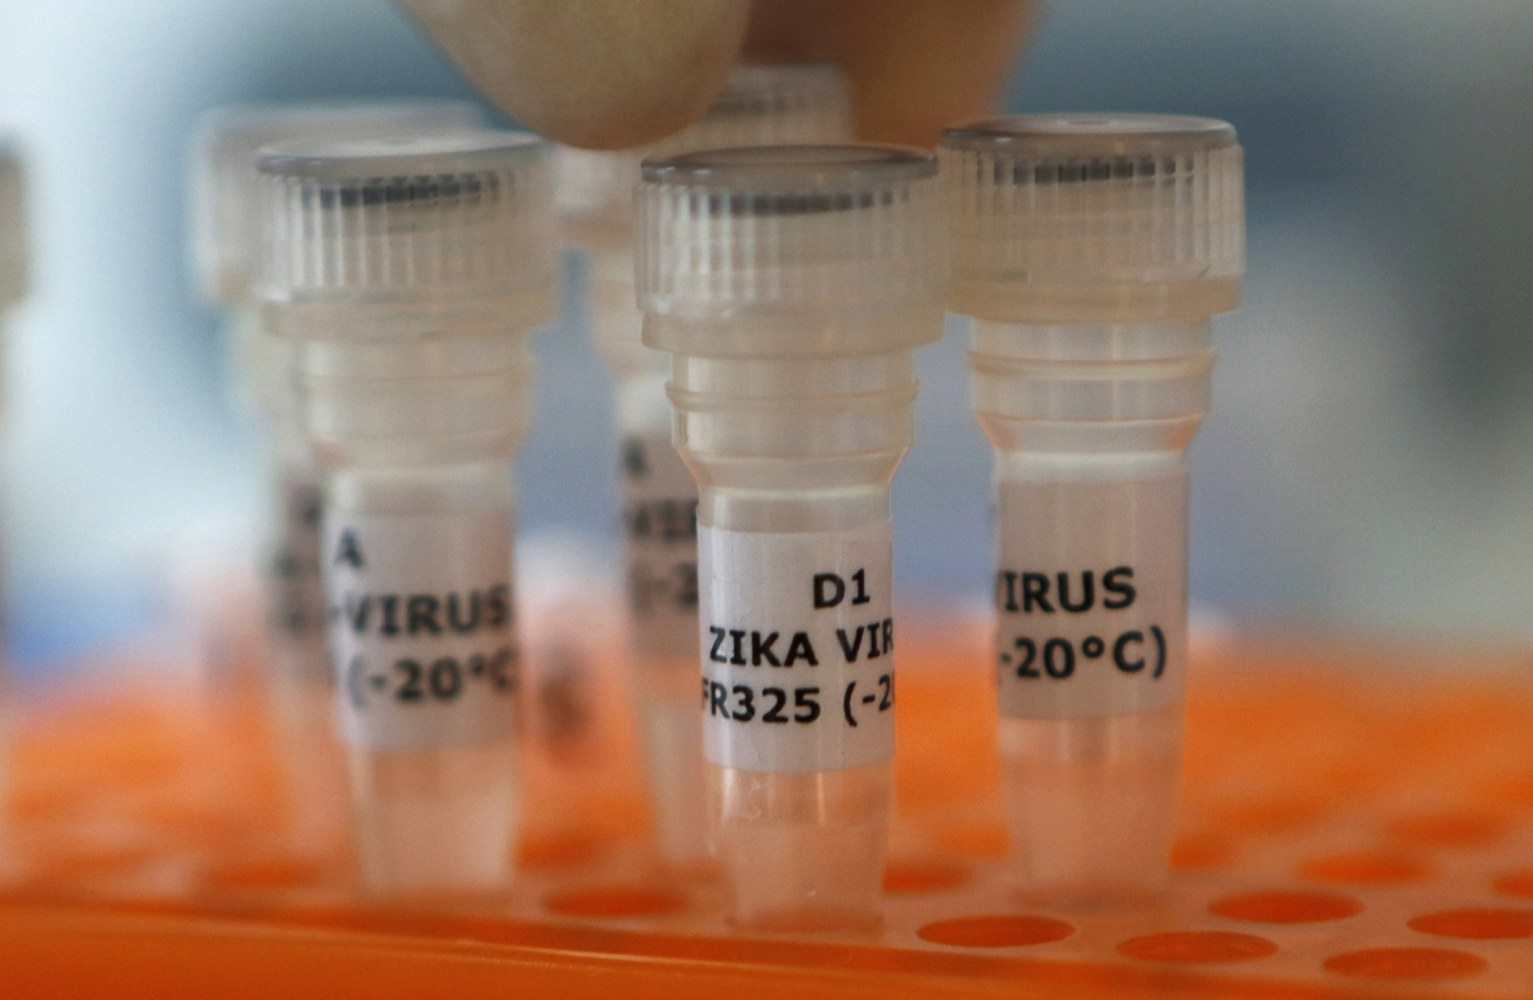 Florida Sperm Donations May Contain the Zika Virus